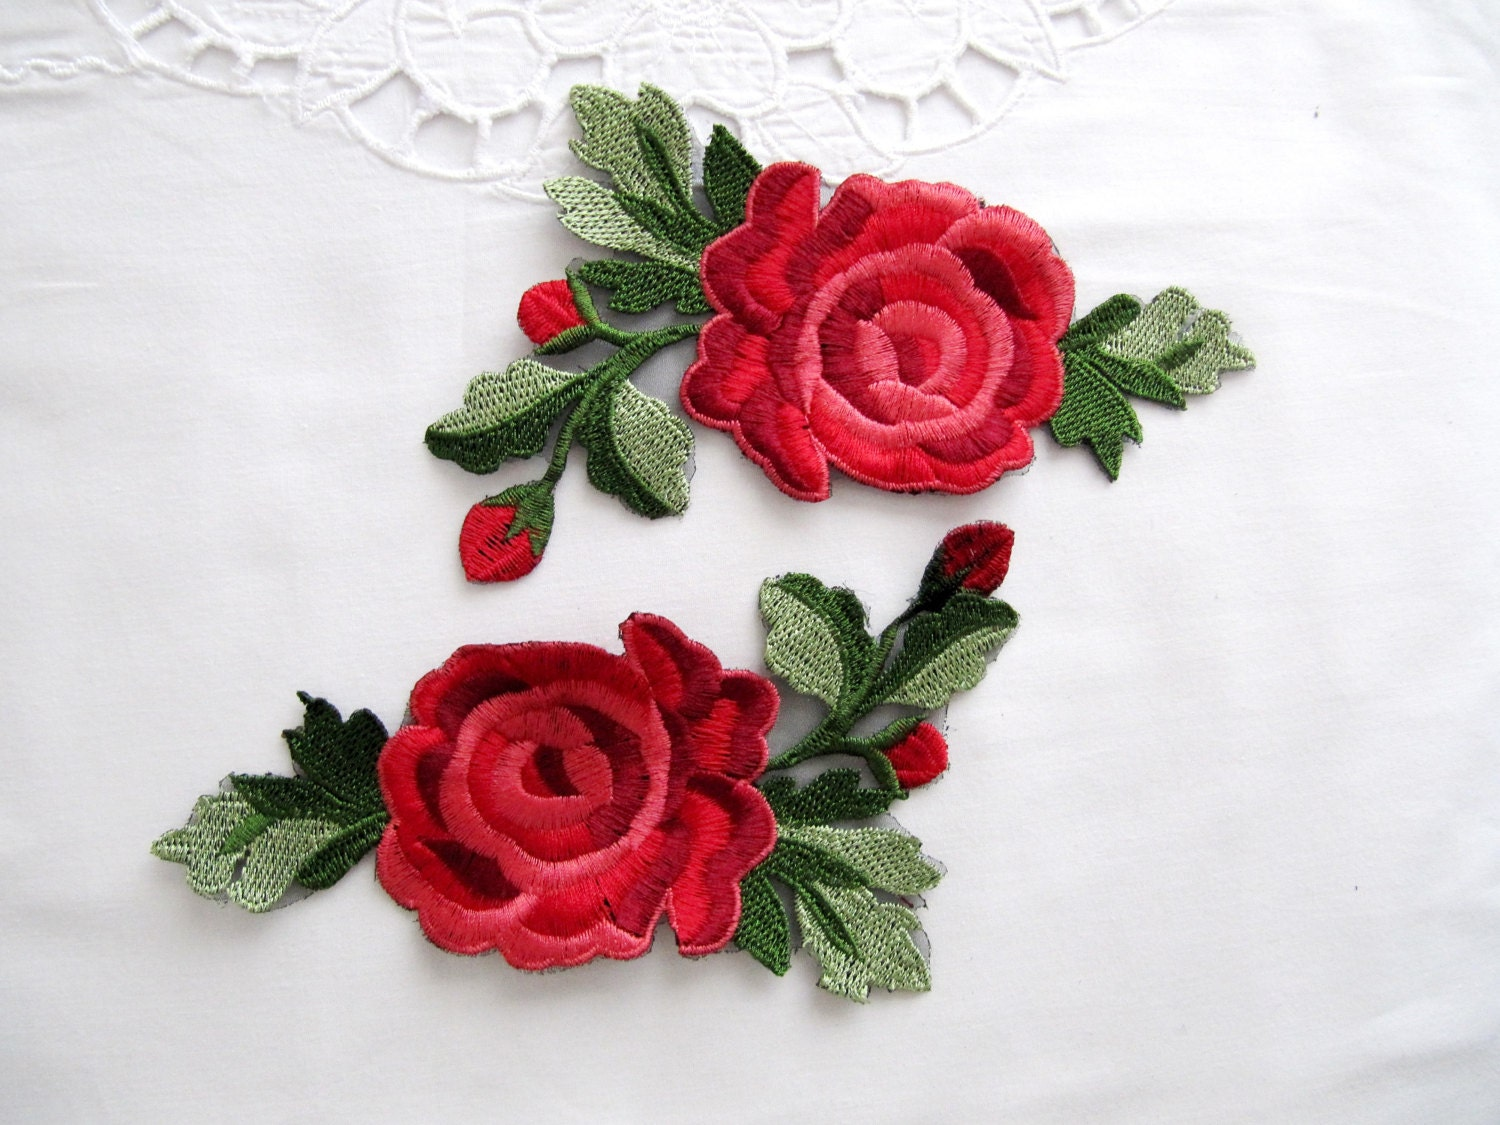 Penna flower patch buds roses pcs red rose